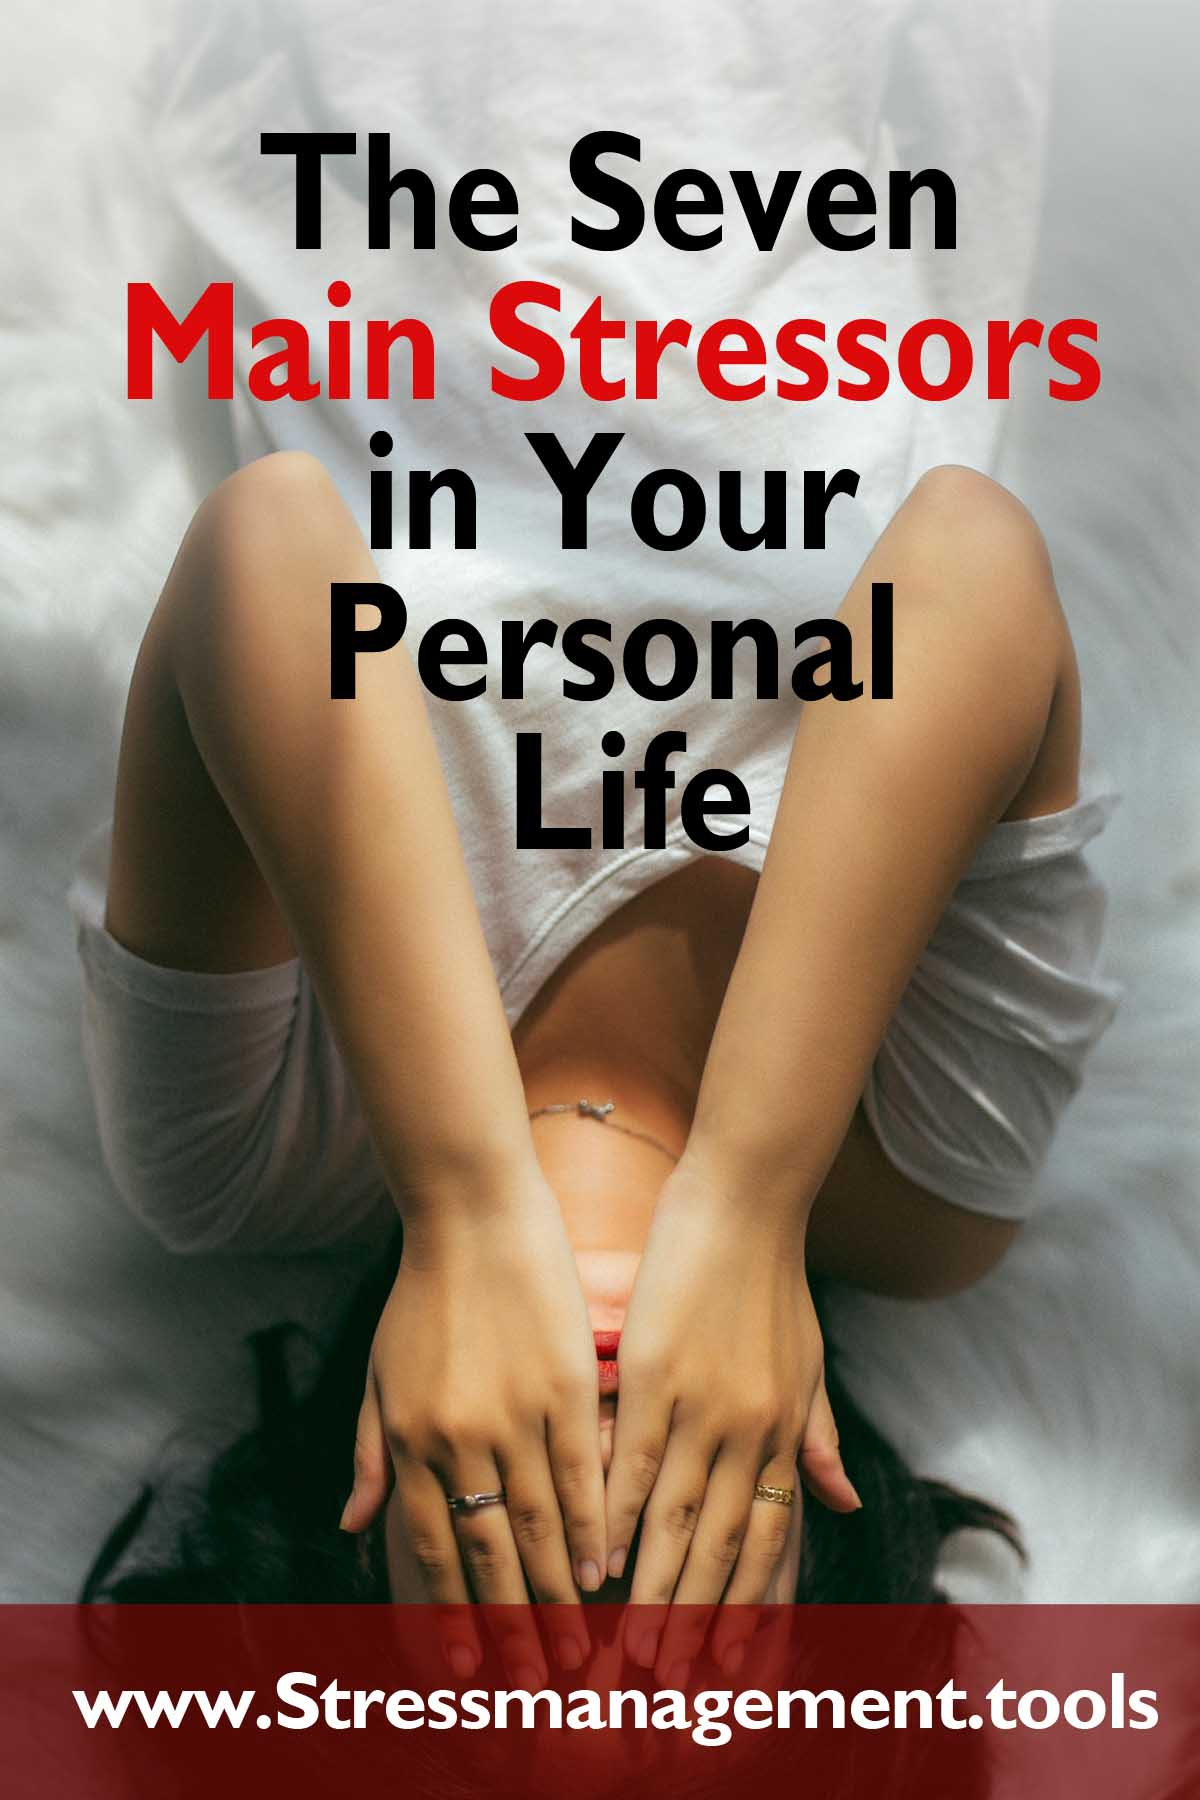 The Seven Main Stressors in Your Personal Life